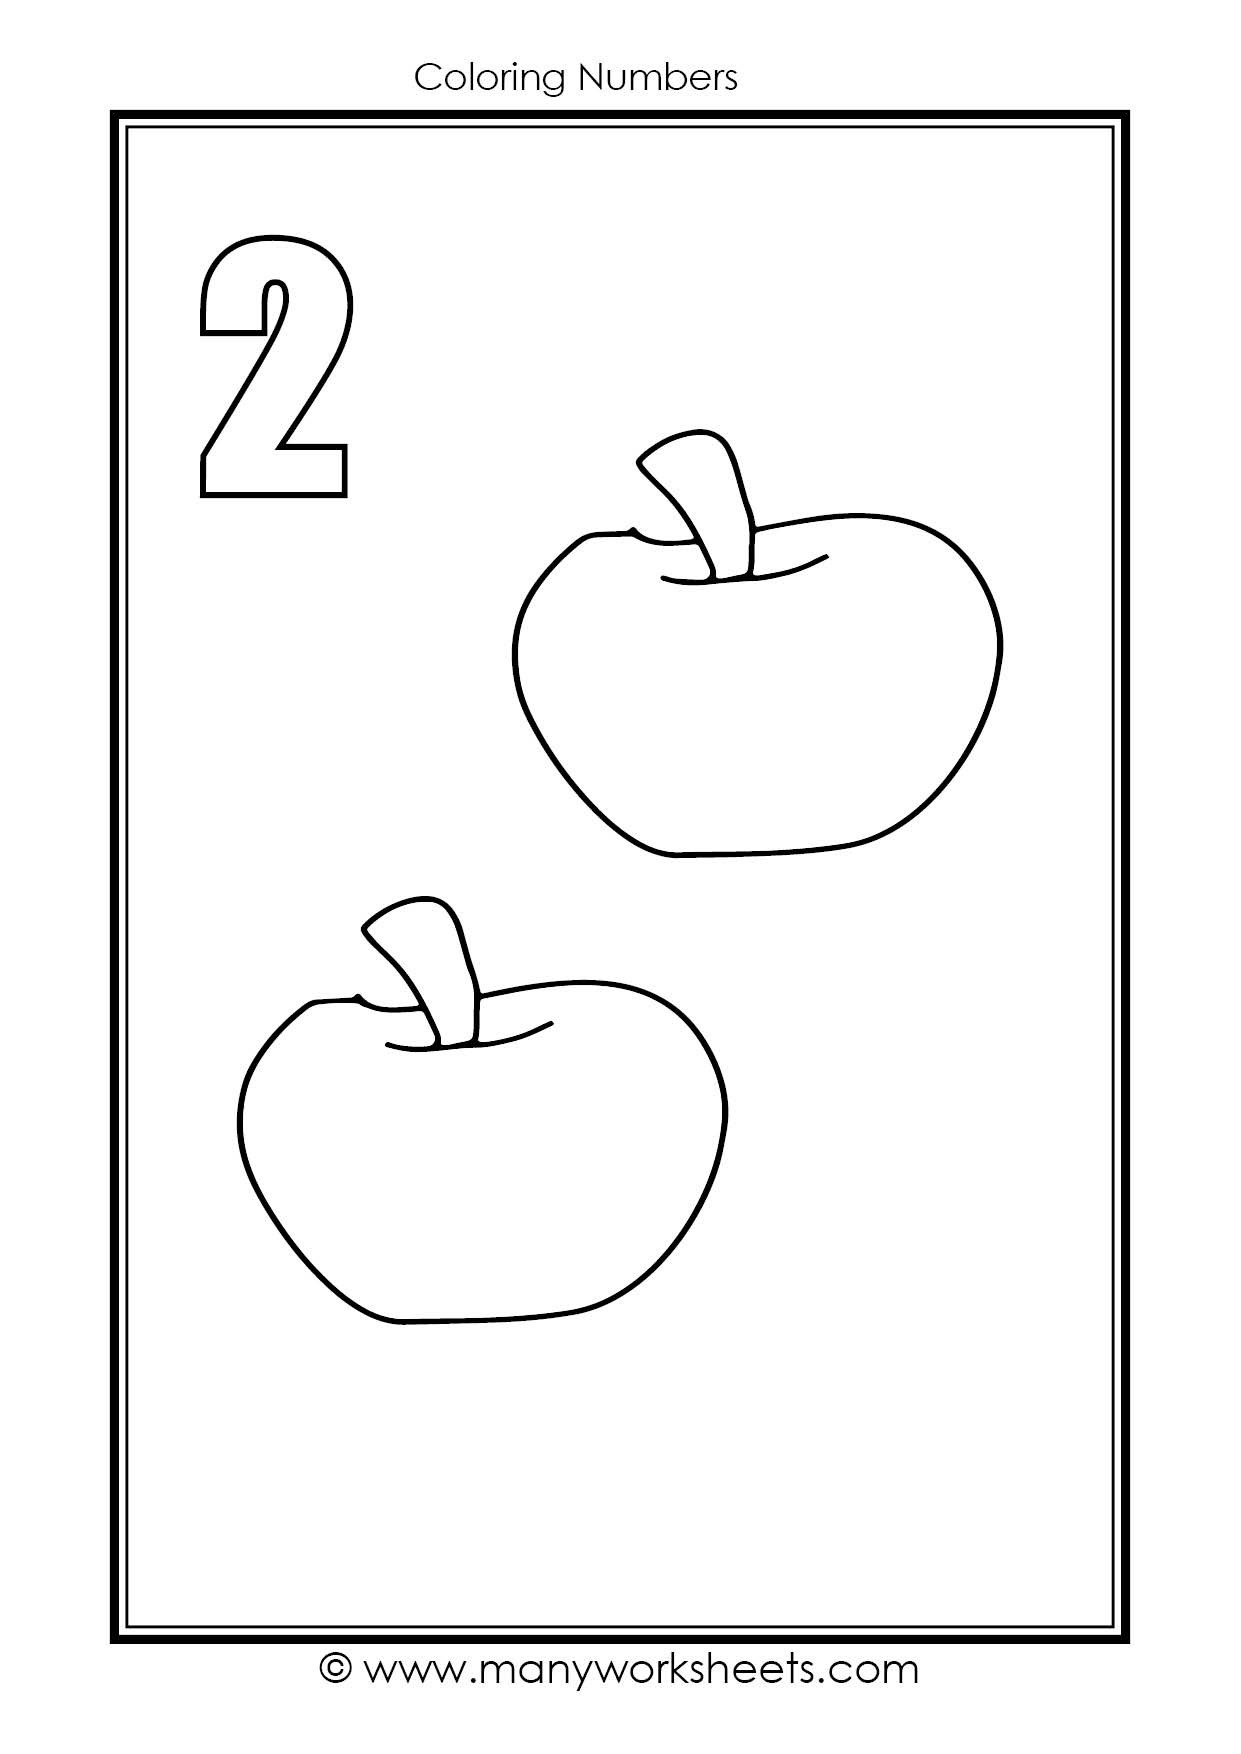 Number 2 Worksheets for Preschool Number 2 Coloring Worksheet